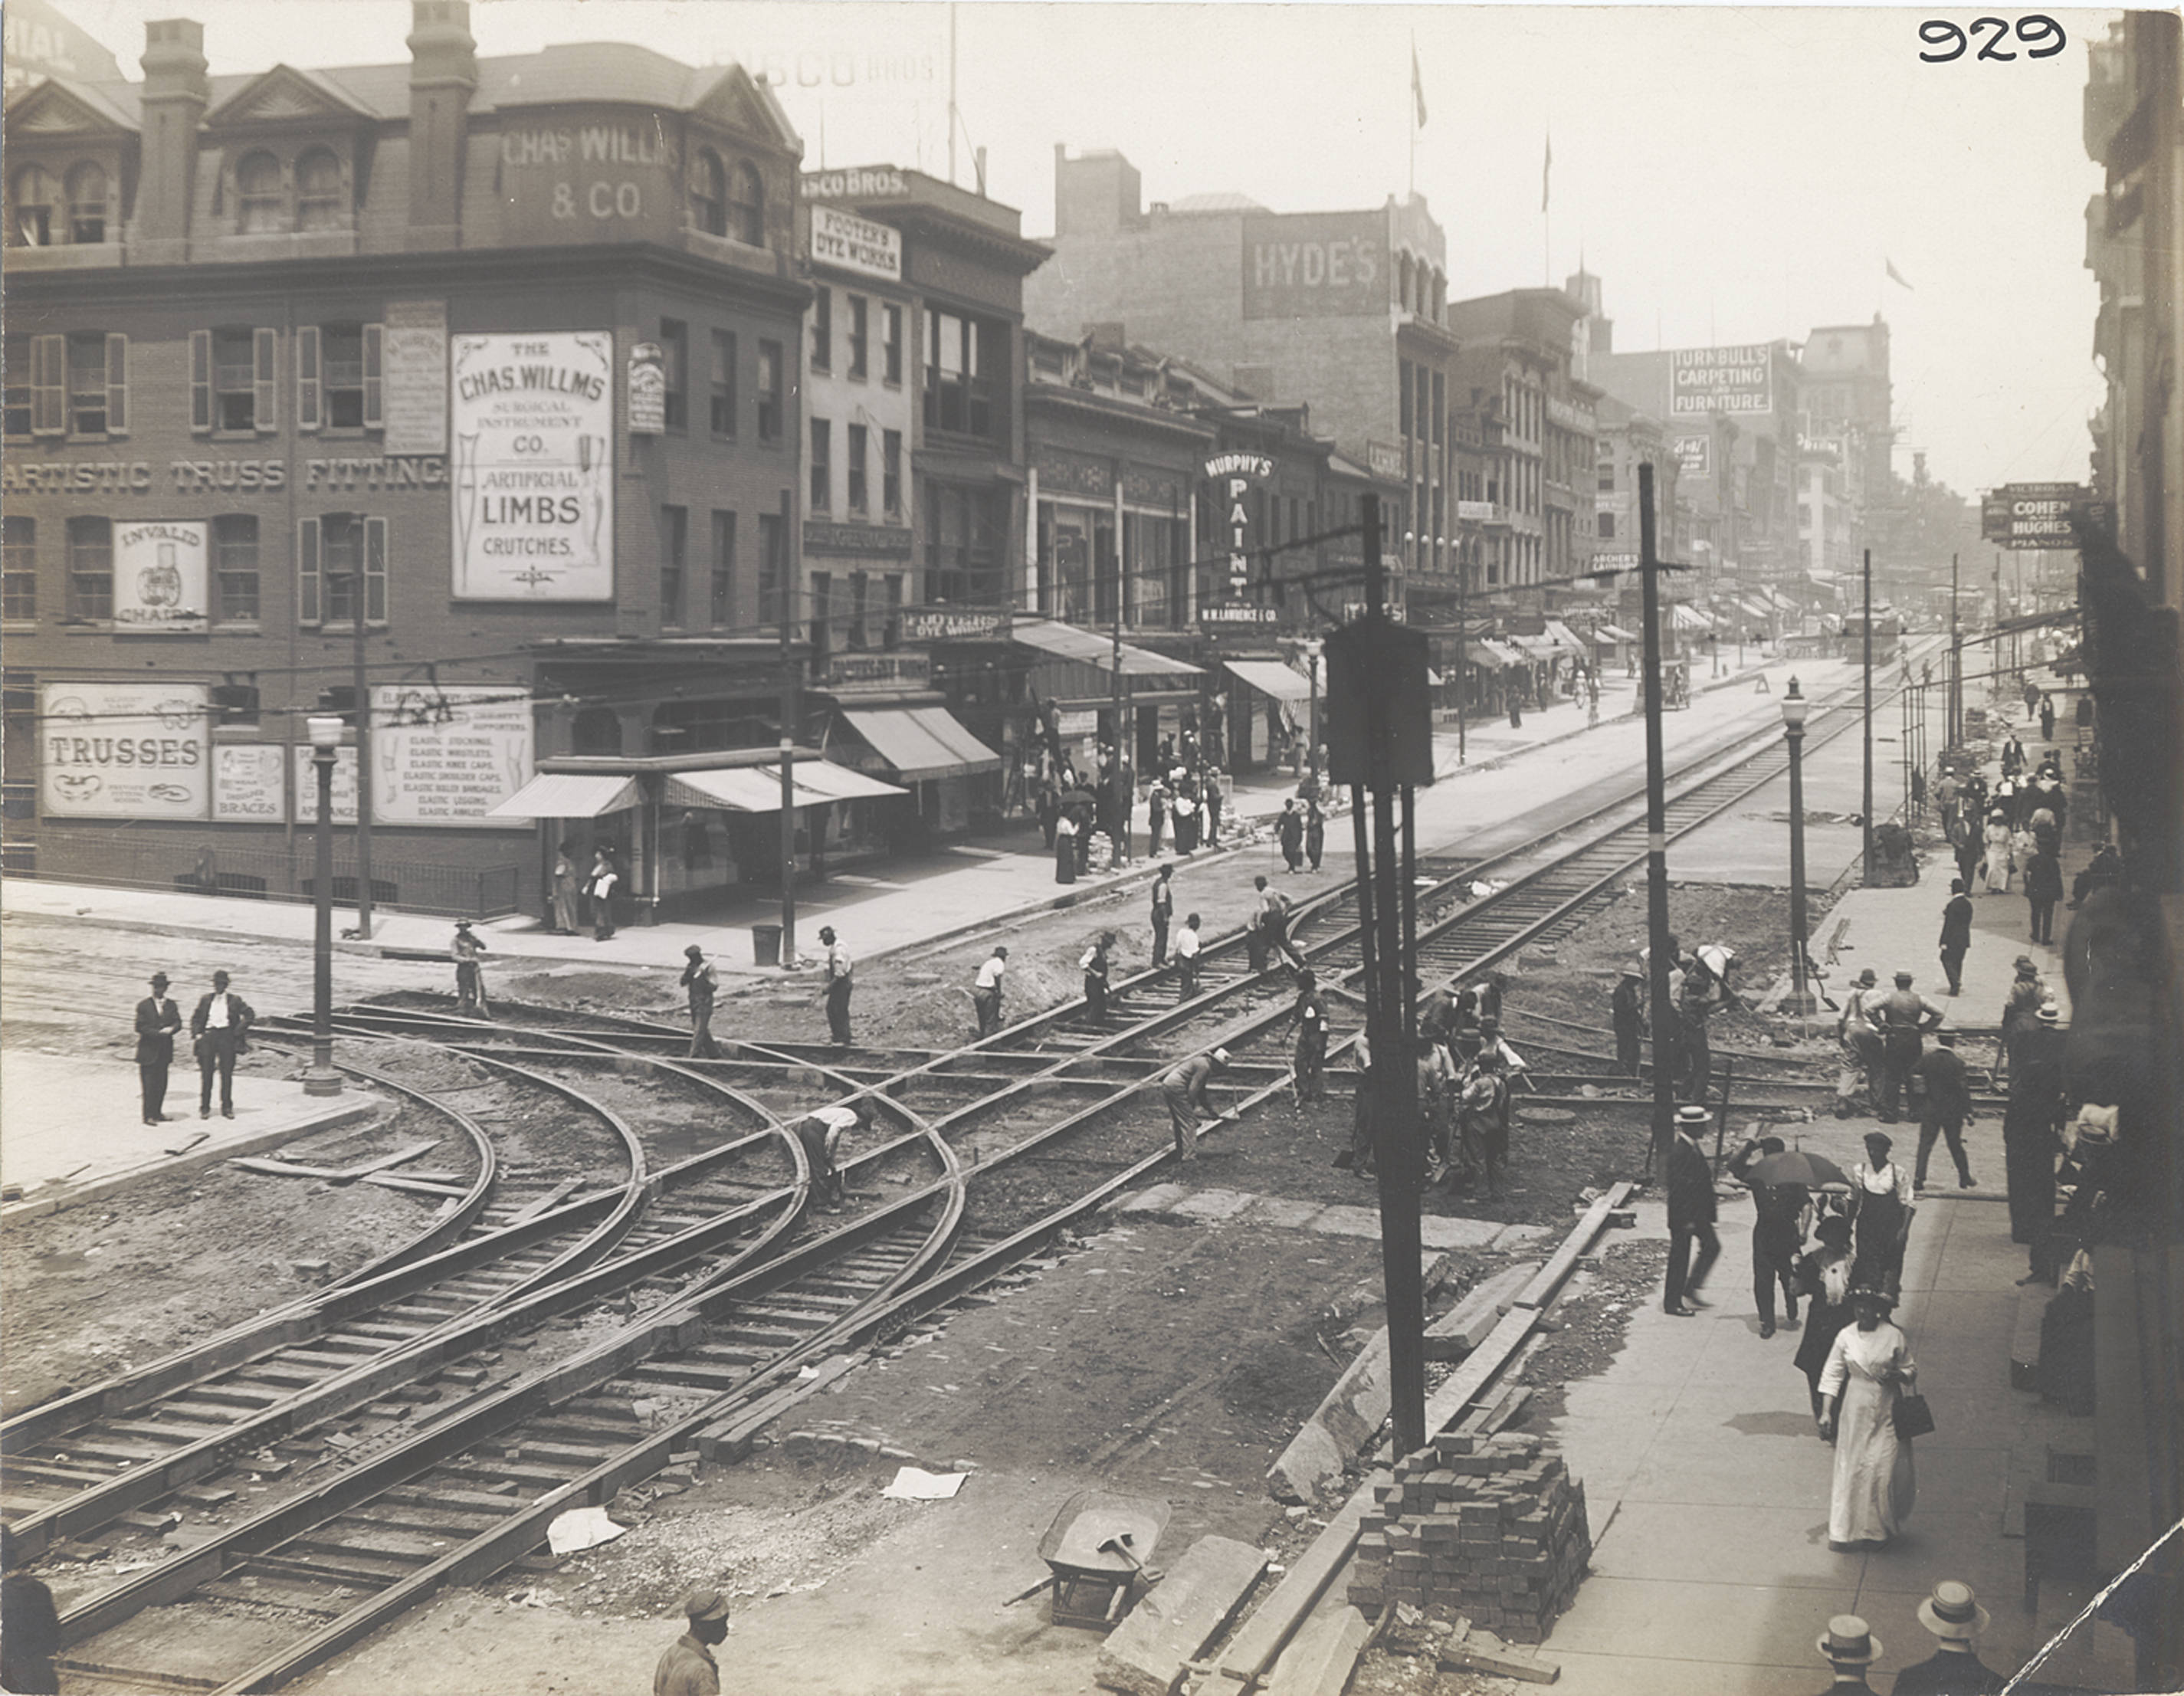 Then and Now: Howard St. and Saratoga St.